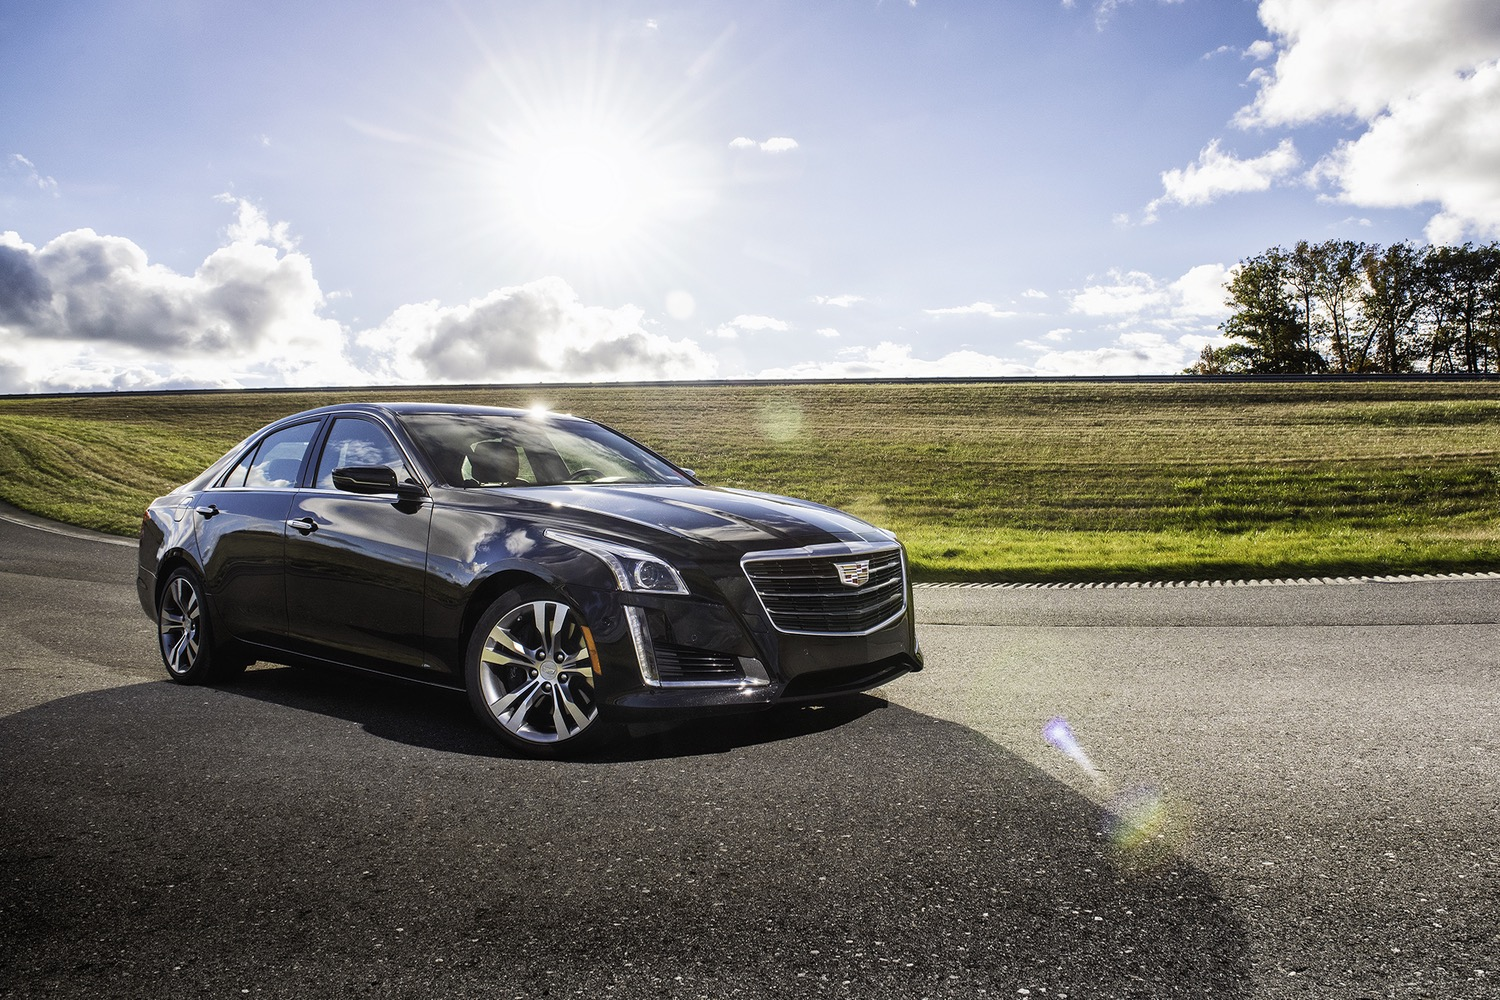 Cadillac's next gen infotainment system aims for a